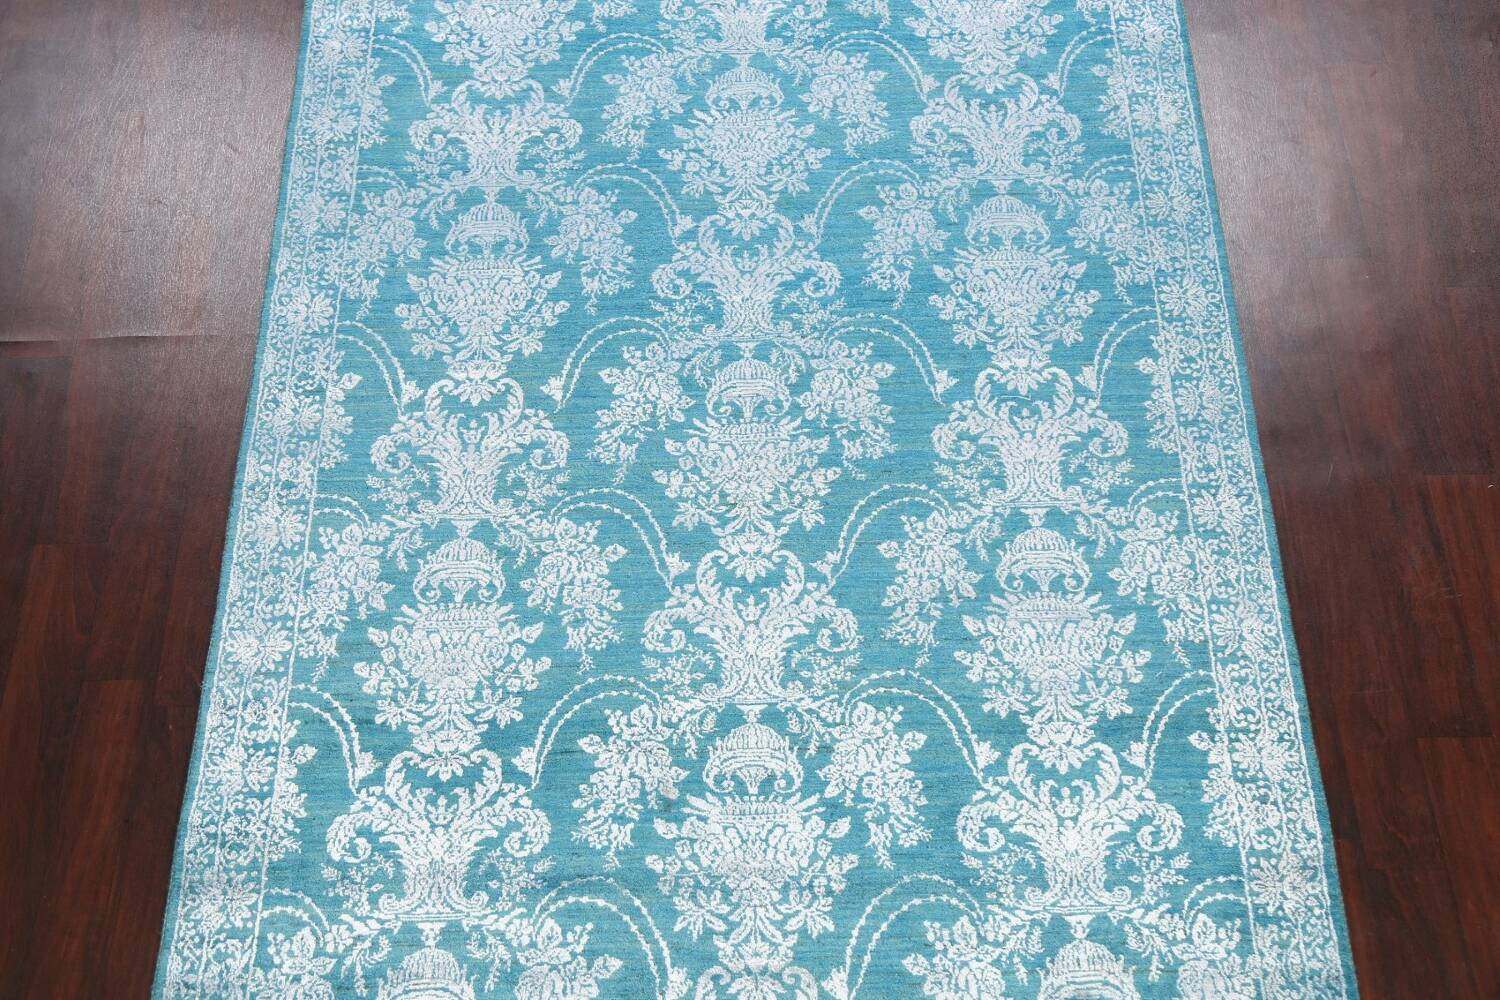 All-Over Floral Art & Craft Oriental Area Rug 6x9 image 3